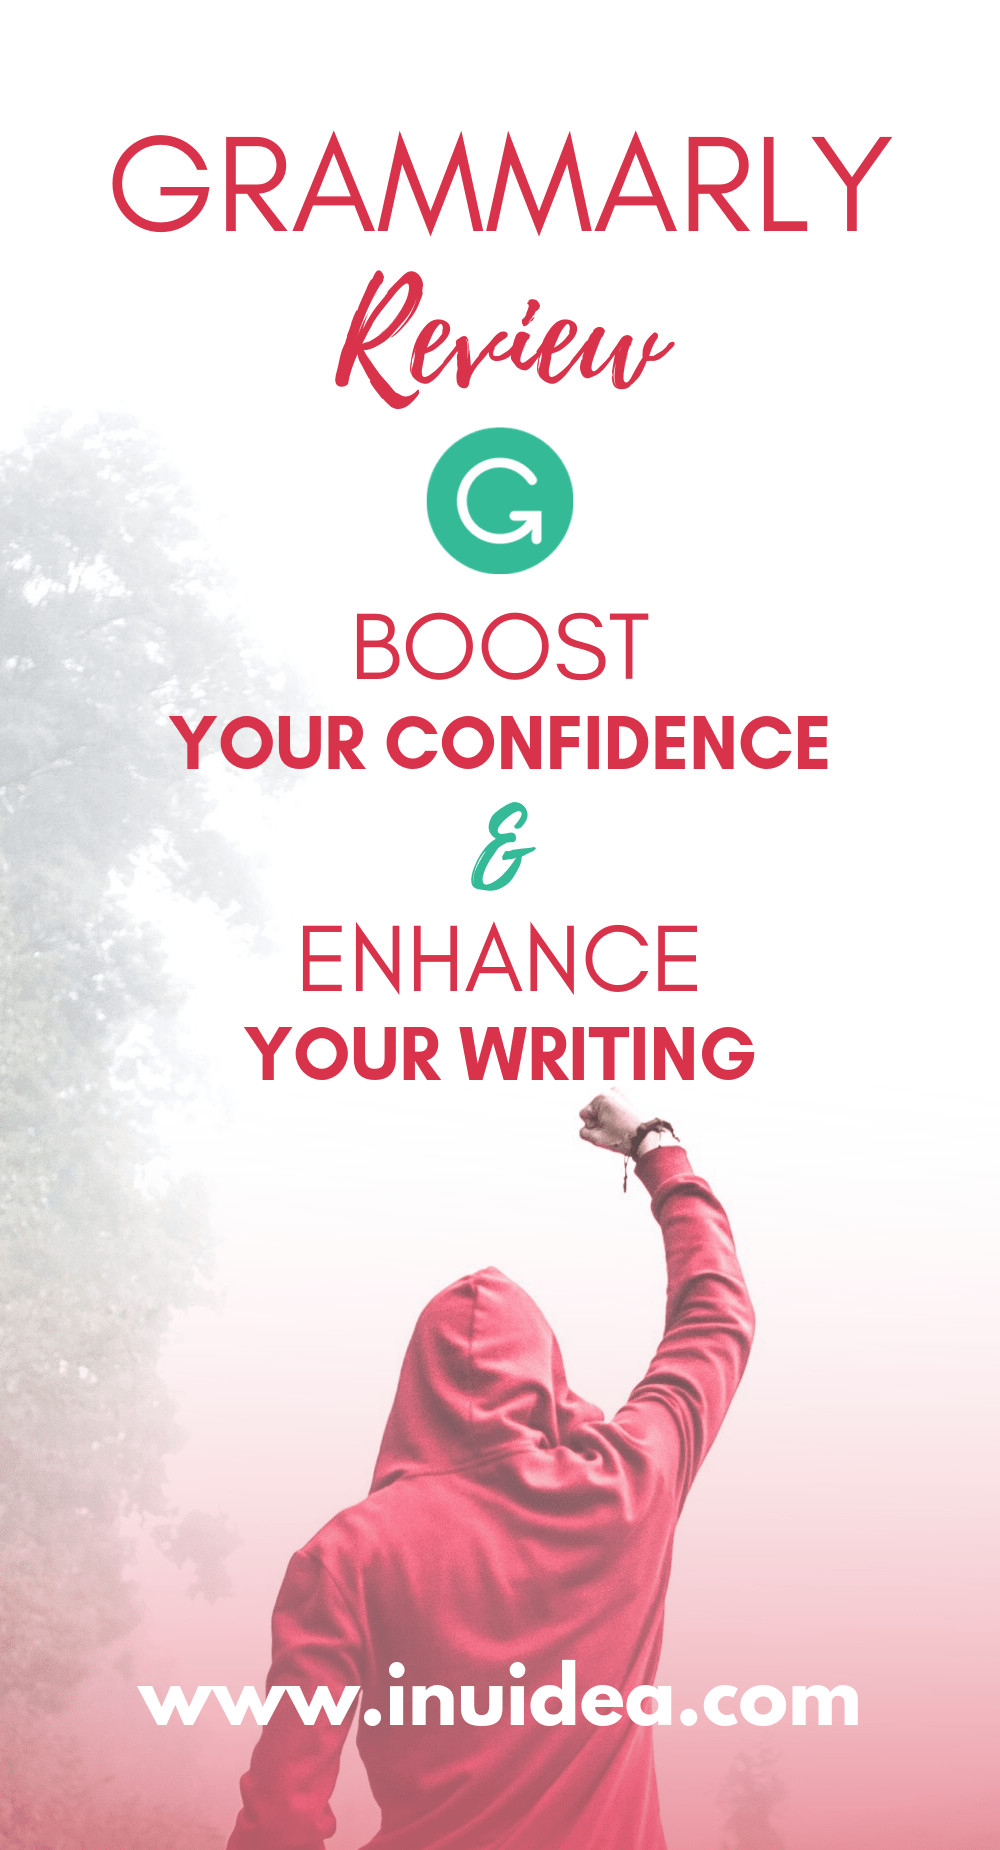 Proofreading Software Grammarly Giveaway 2020 No Survey